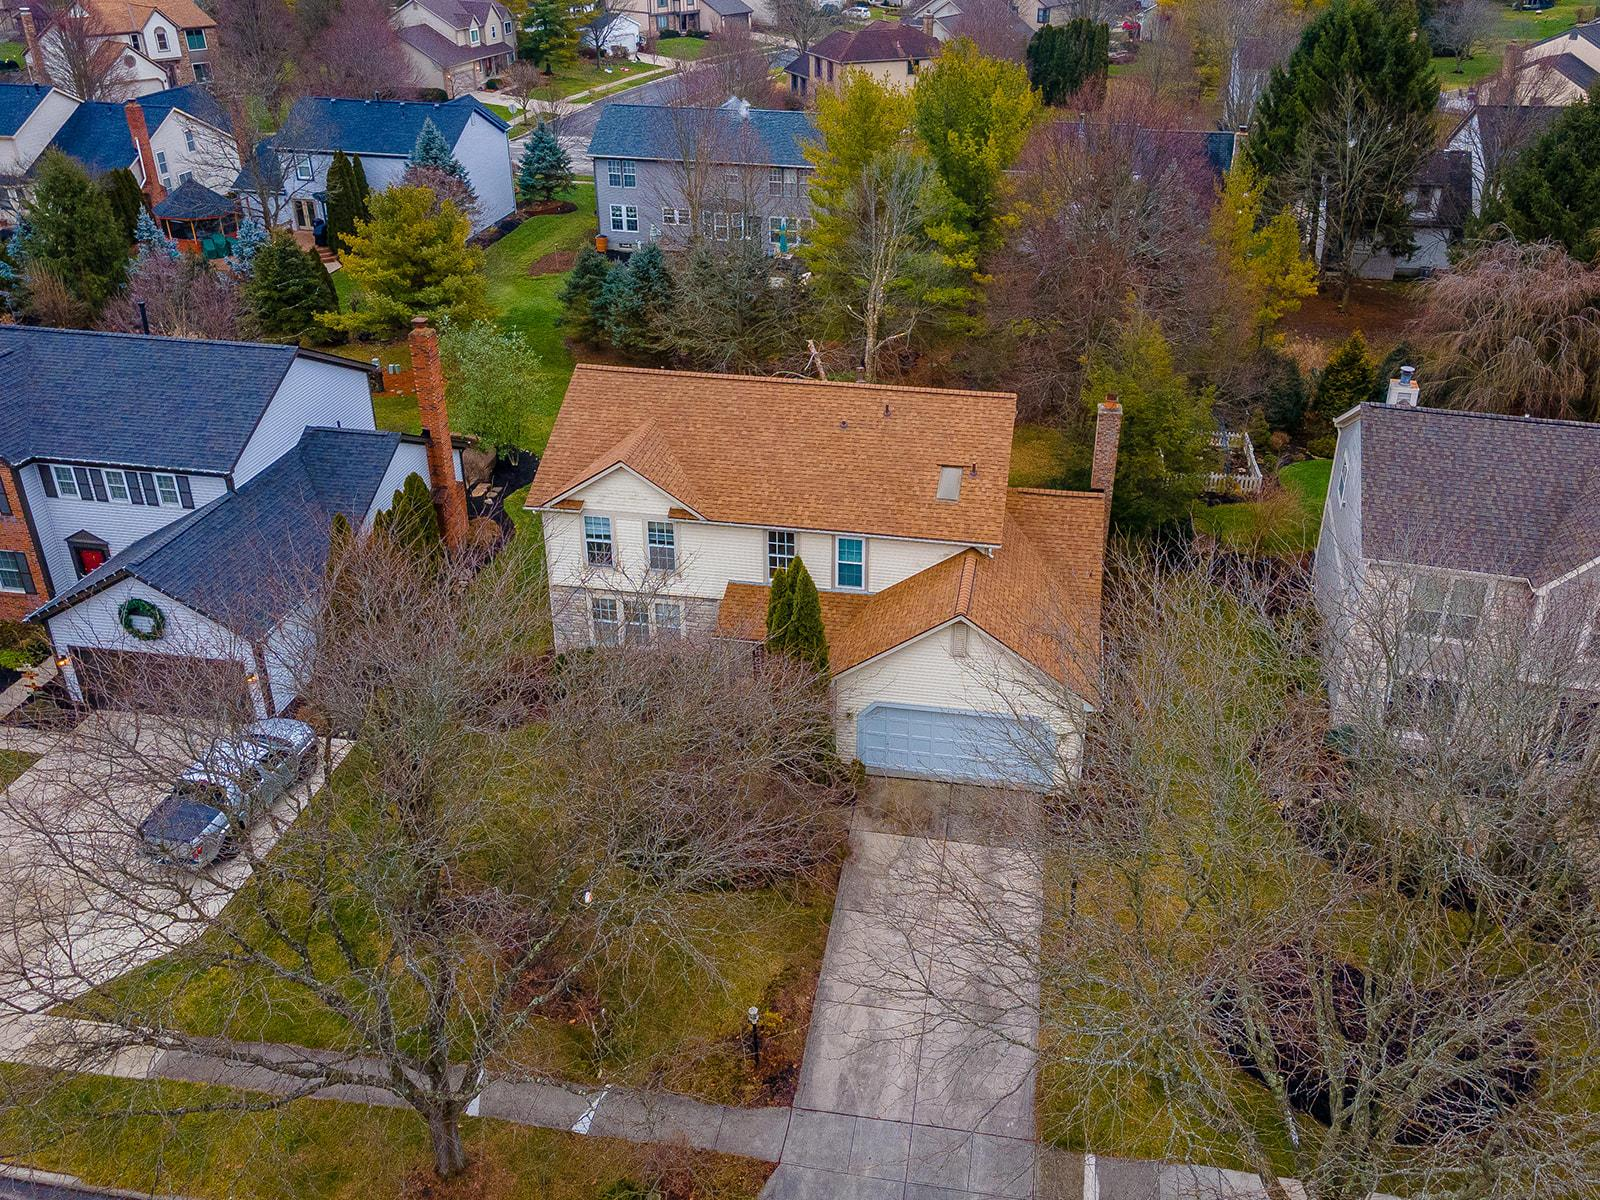 5751 Sells Mill Drive, Dublin, Ohio 43017, 4 Bedrooms Bedrooms, ,3 BathroomsBathrooms,Residential,For Sale,Sells Mill,221000215